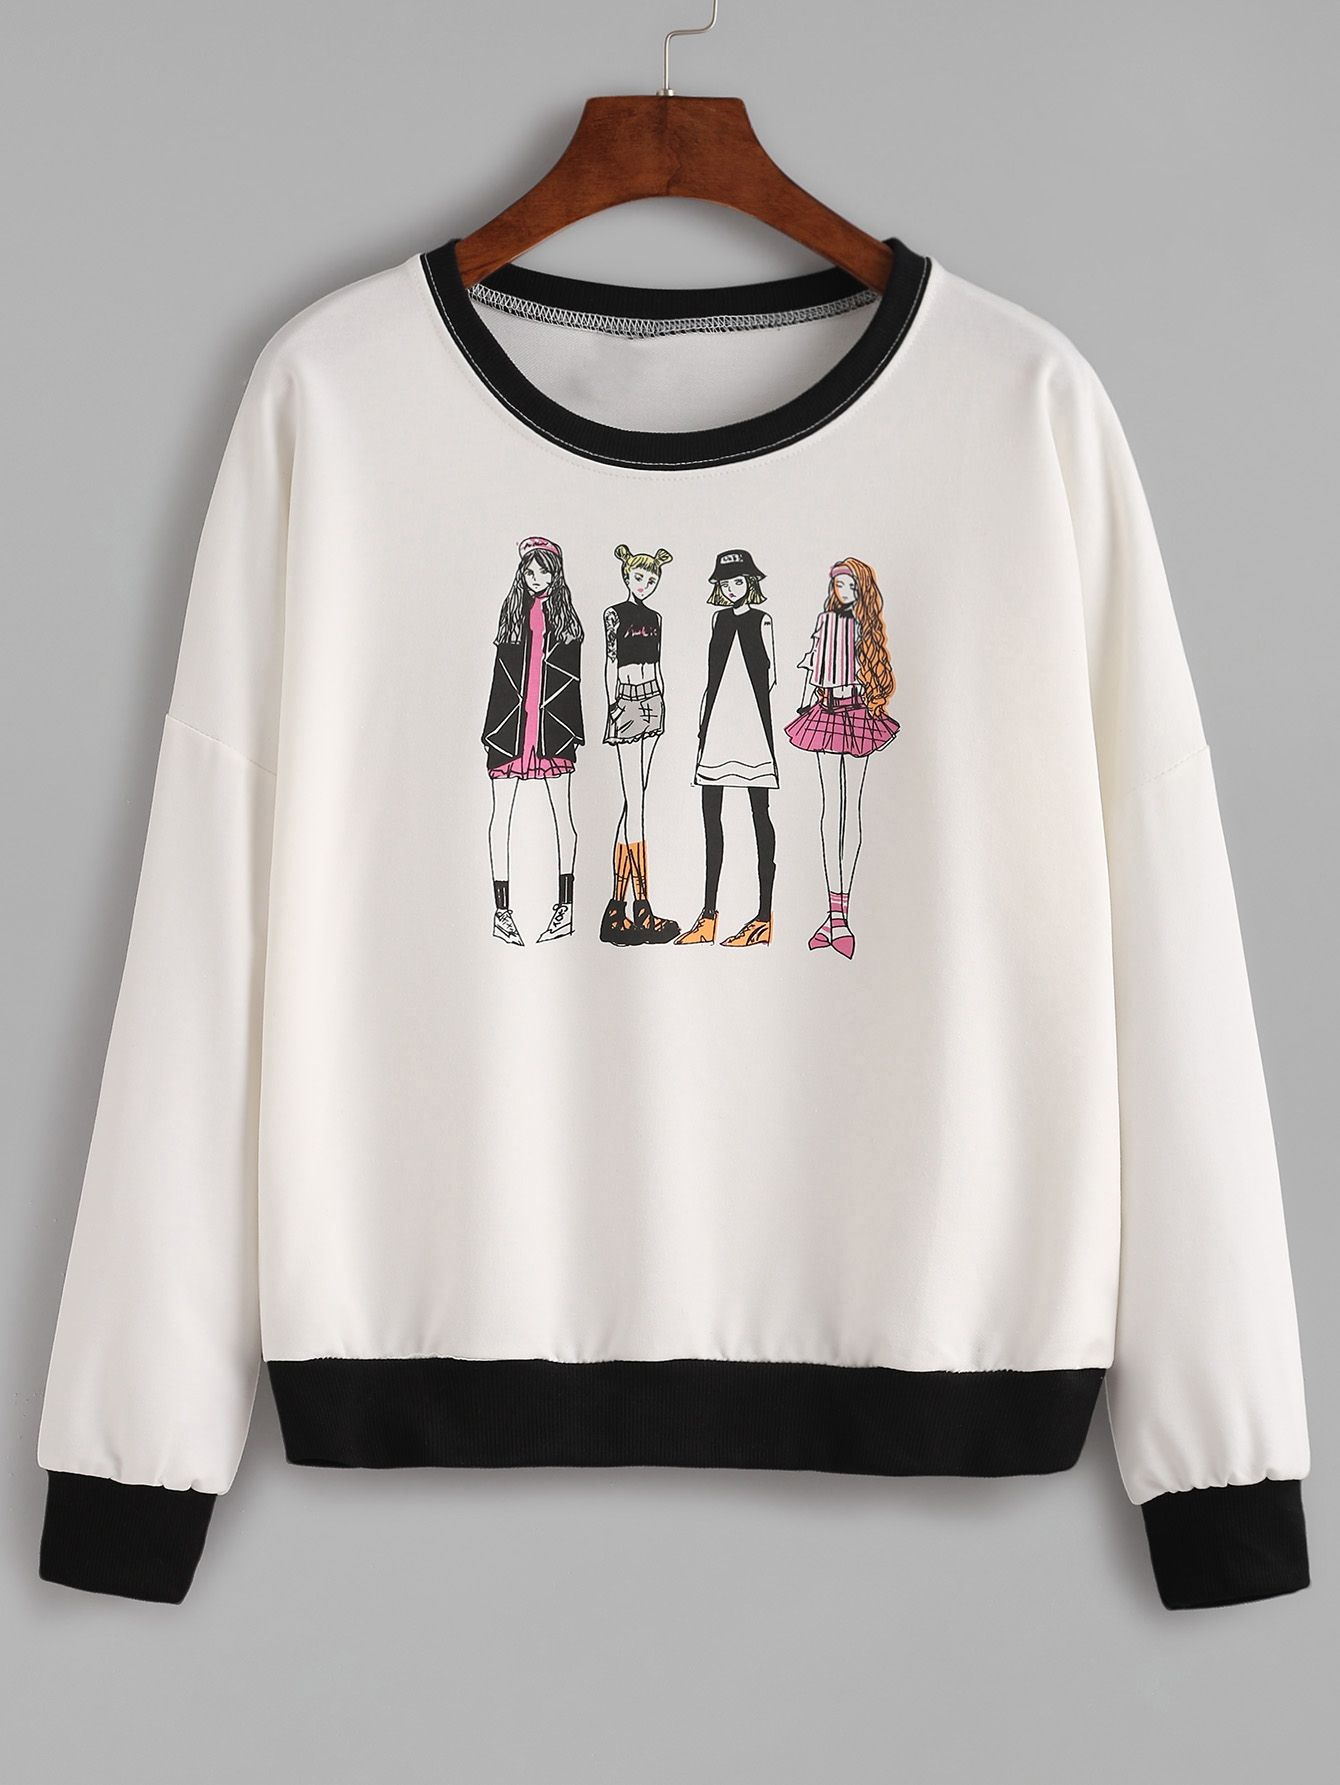 9045ed1d31 Shop Contrast Trim Girls Print Sweatshirt online. SheIn offers Contrast  Trim Girls Print Sweatshirt & more to fit your fashionable needs.